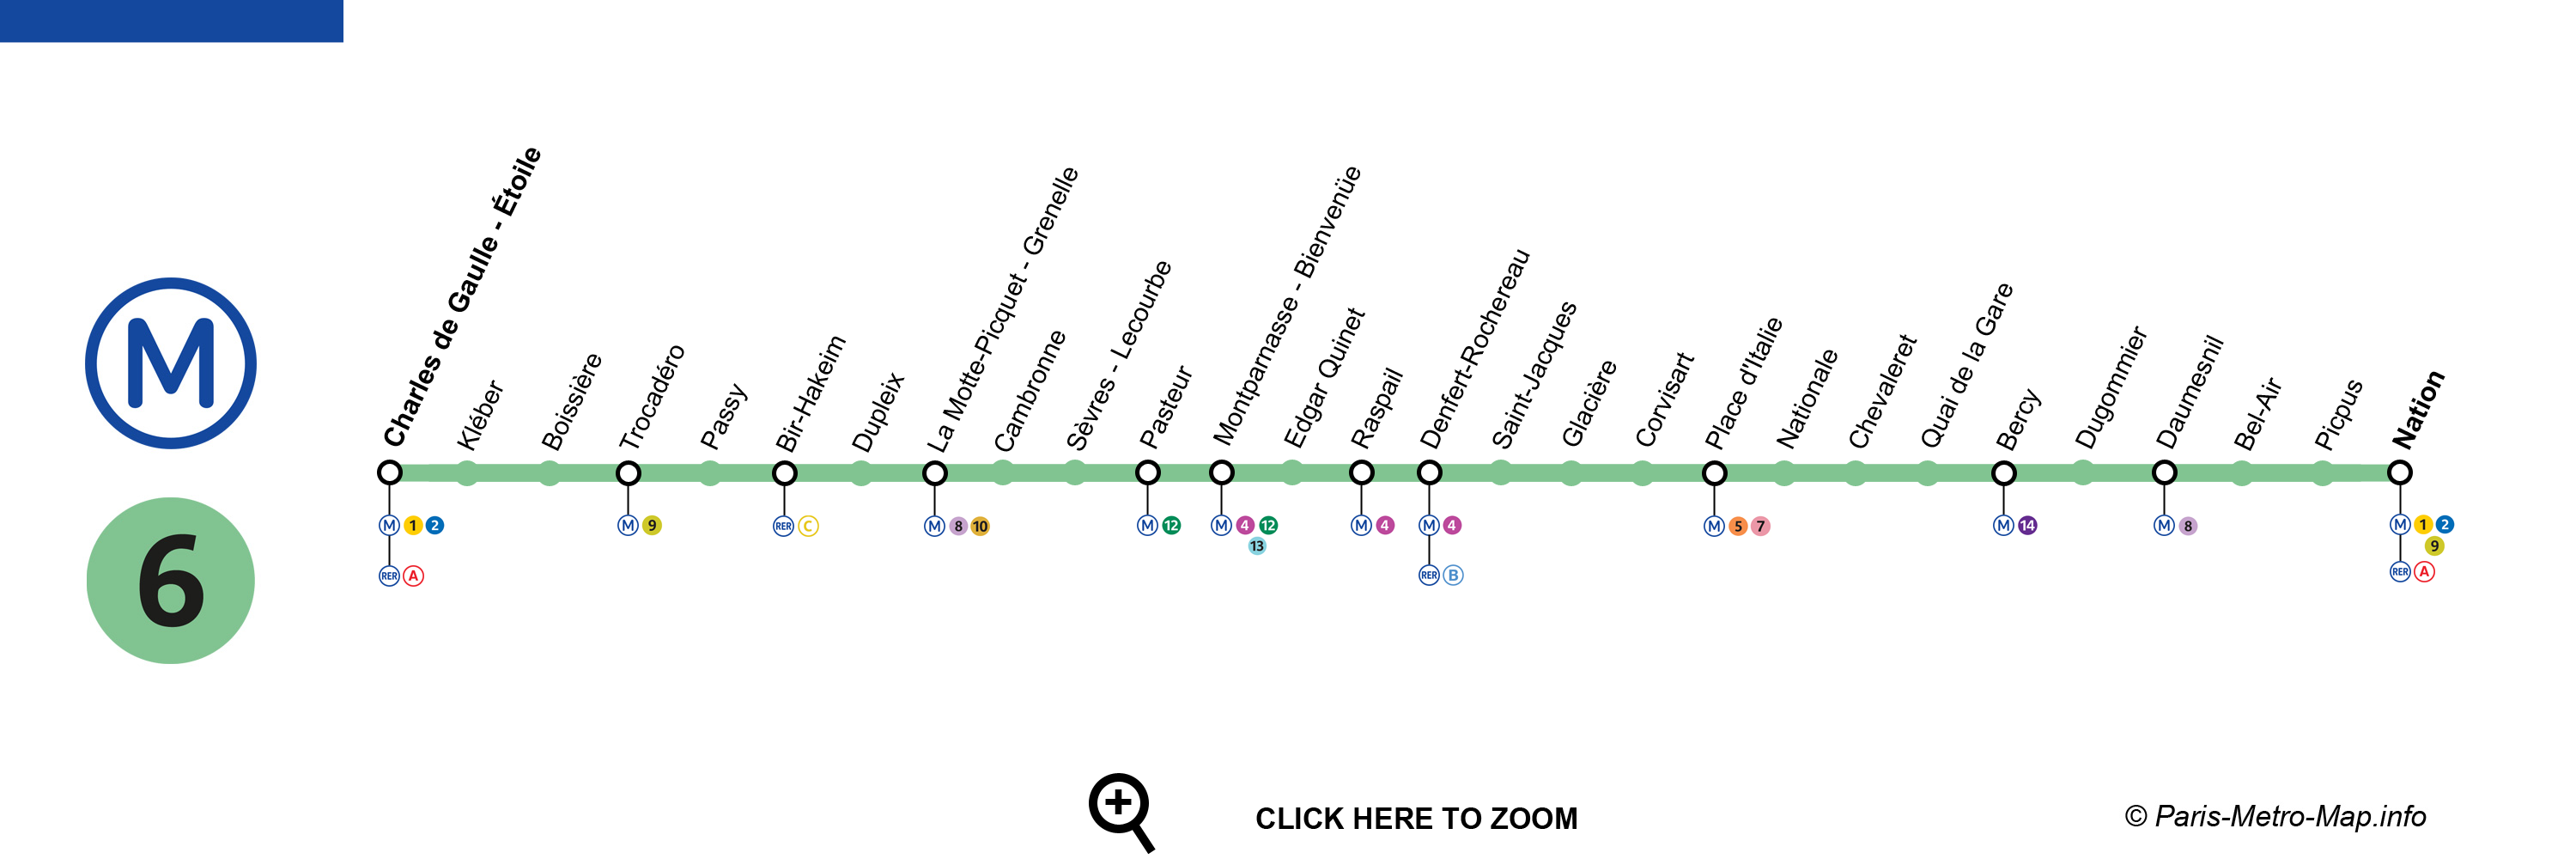 Paris metro 6 map